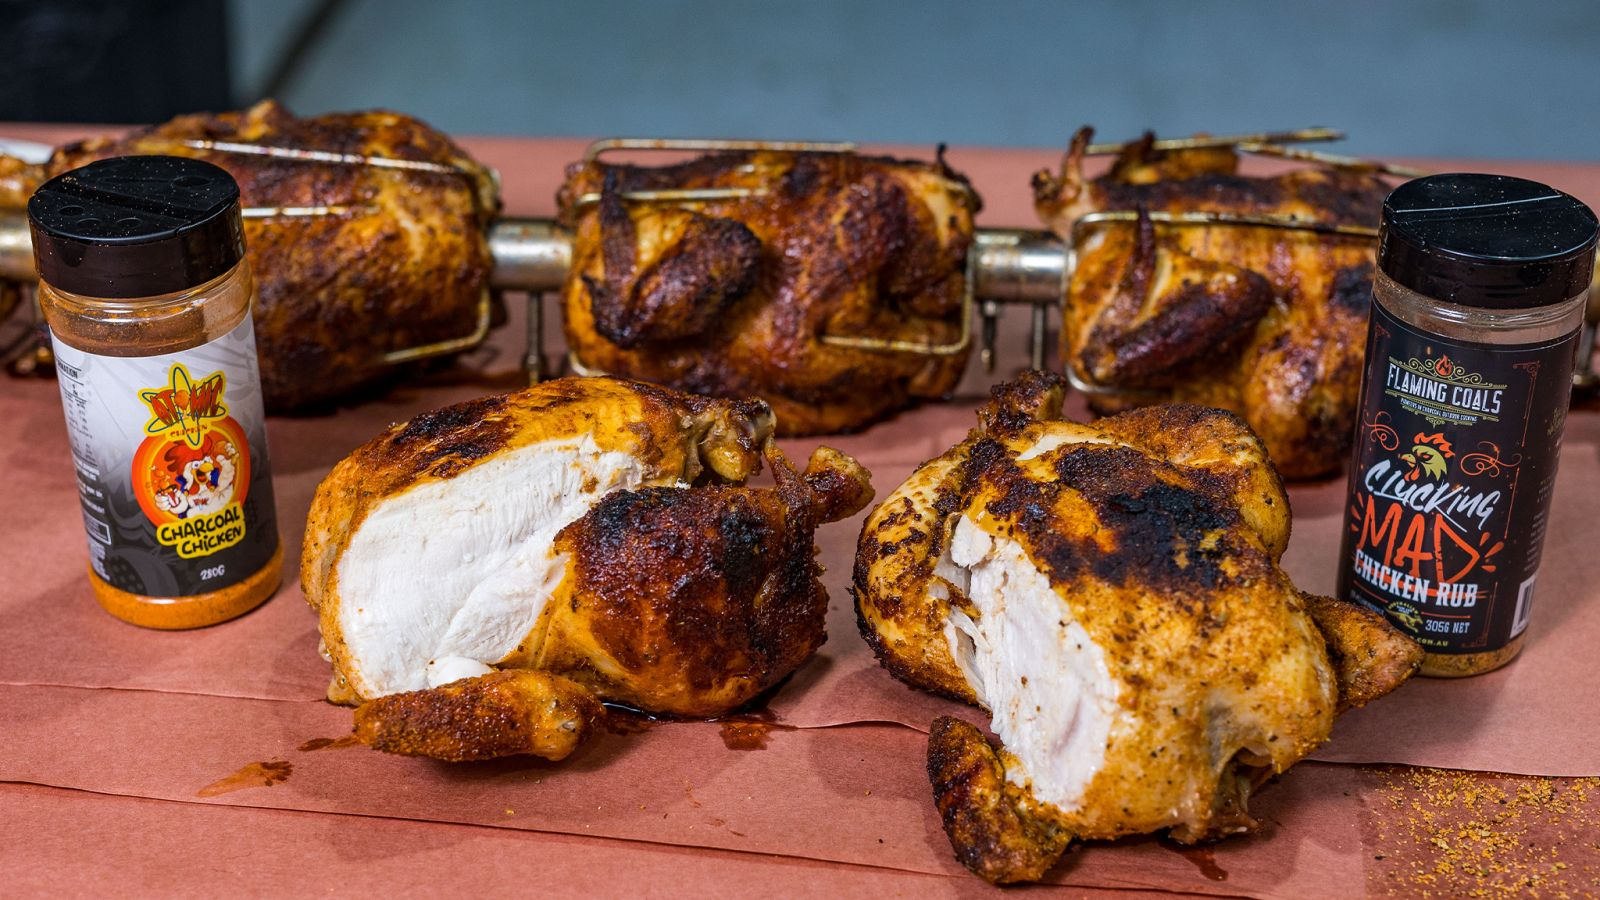 This image shows 5 whole chicken, charcoal chicken rub and flaming coals chicken rub